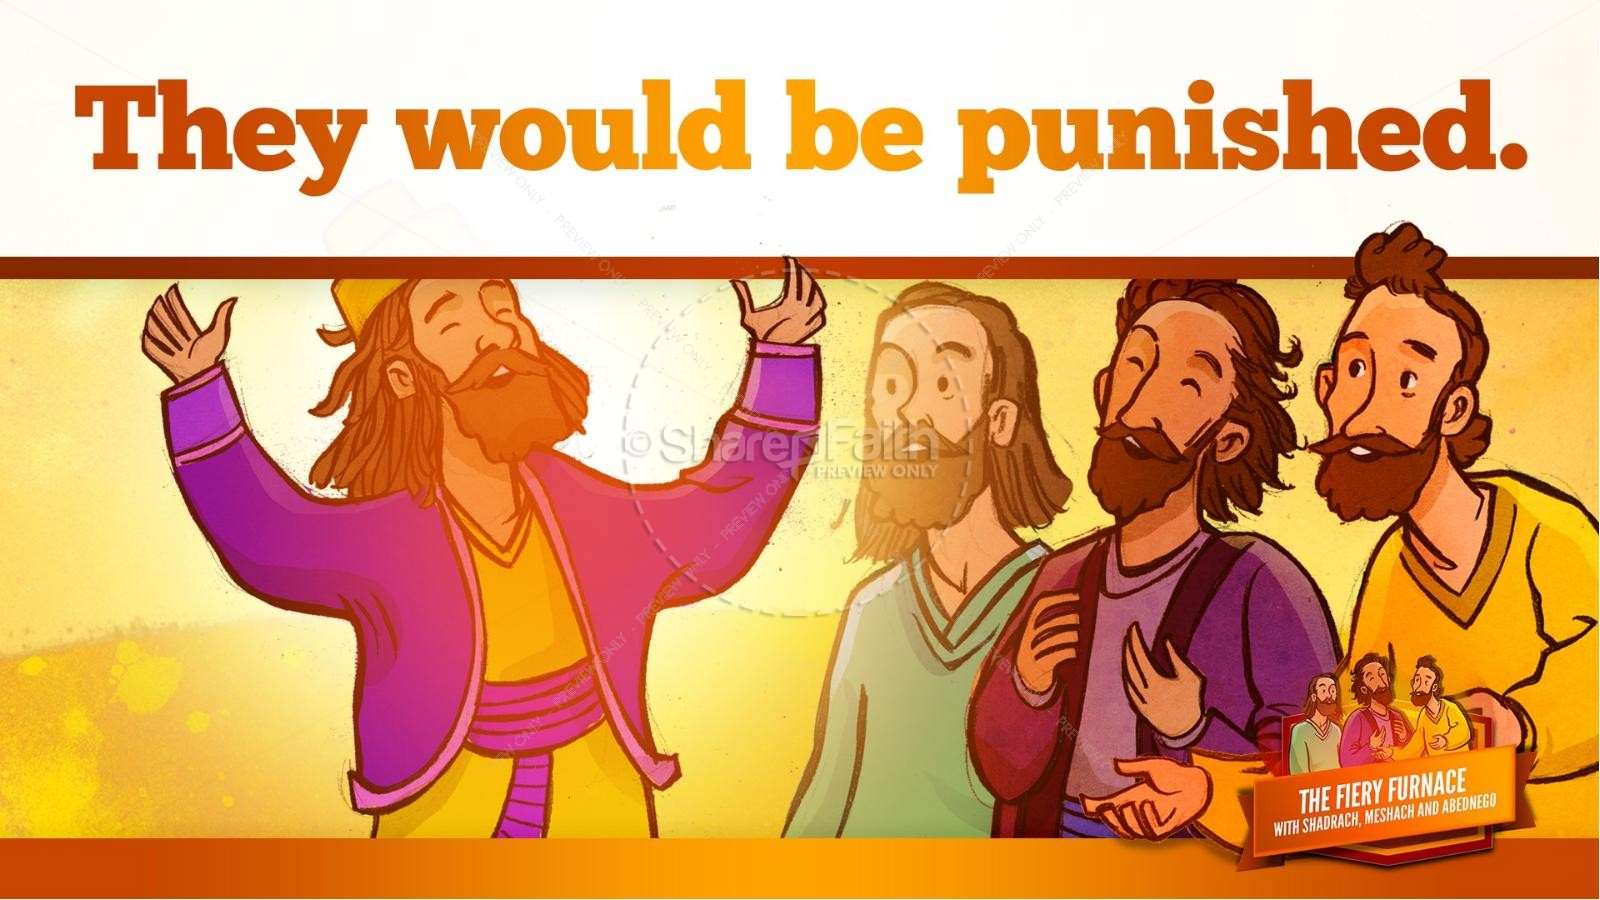 The Fiery Furnace with Shadrach, Meshach and Abednego Kids Bible Story | slide 61